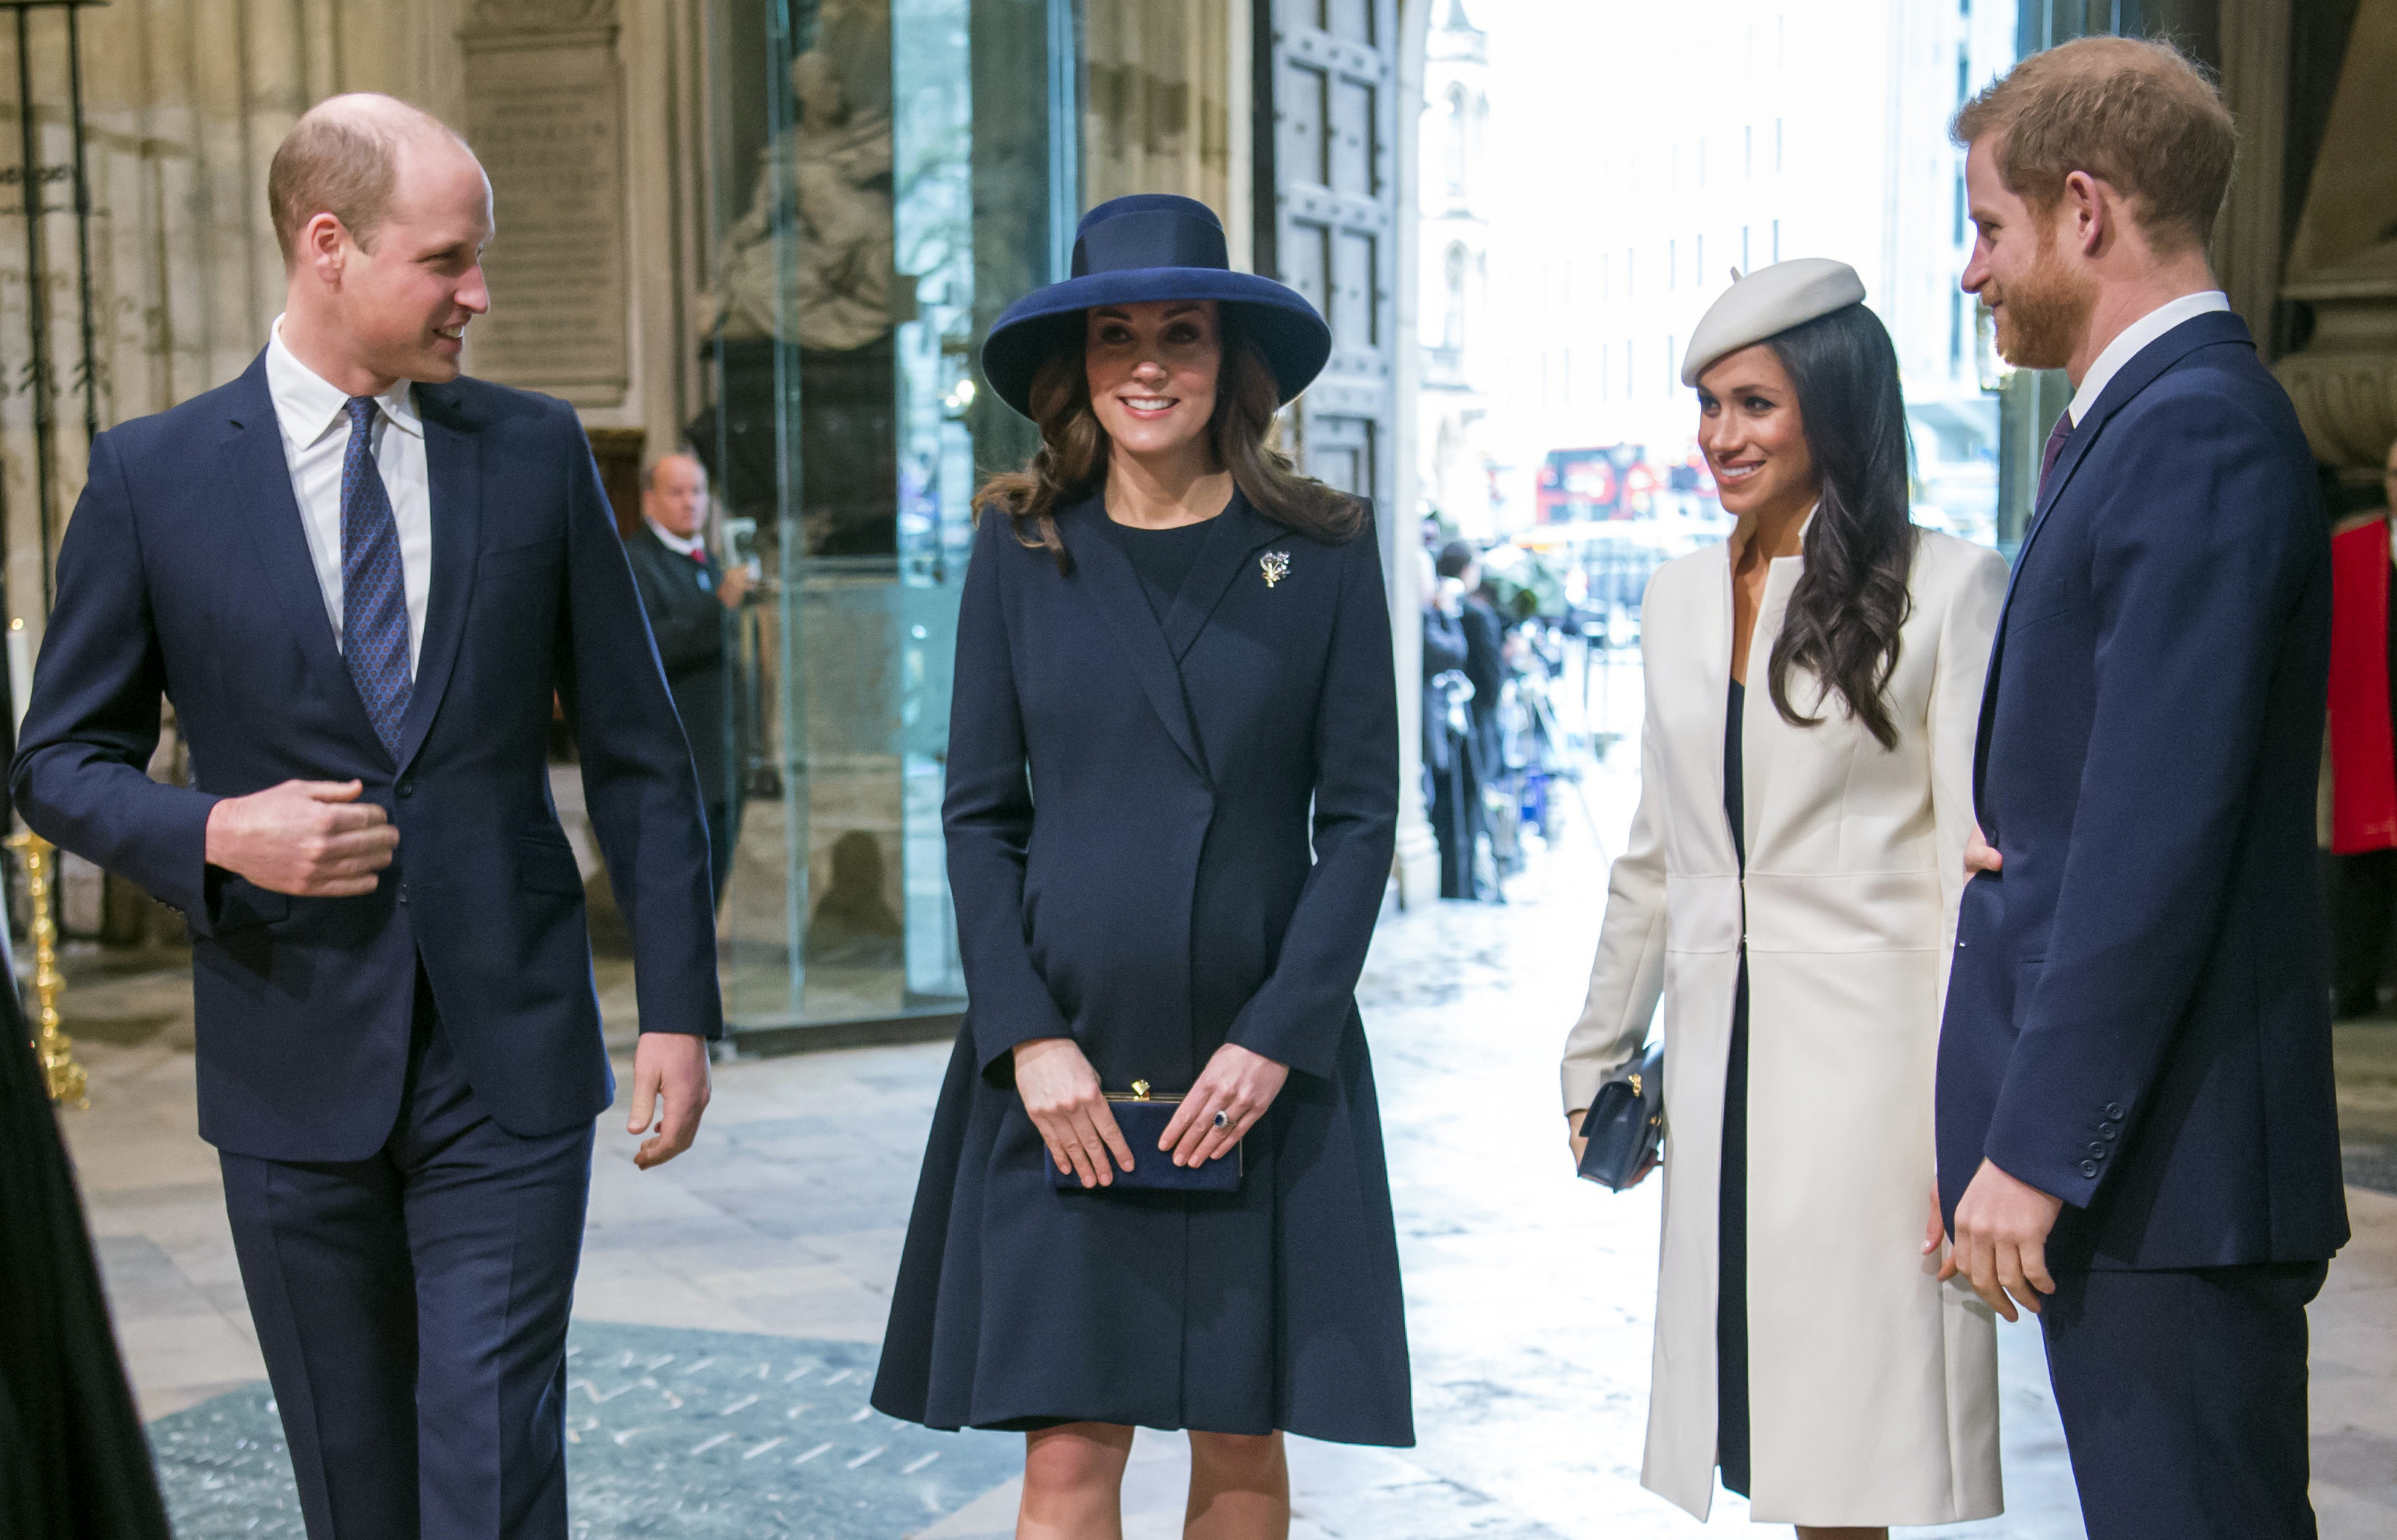 <div class='meta'><div class='origin-logo' data-origin='none'></div><span class='caption-text' data-credit='Paul Grover/Pool Photo via AP'>Britain's Prince William, Kate the Duchess of Cambridge, Meghan Markle and Britain's Prince Harry arrive for the Commonwealth Service at Westminster Abbey on March 12, 2018.</span></div>